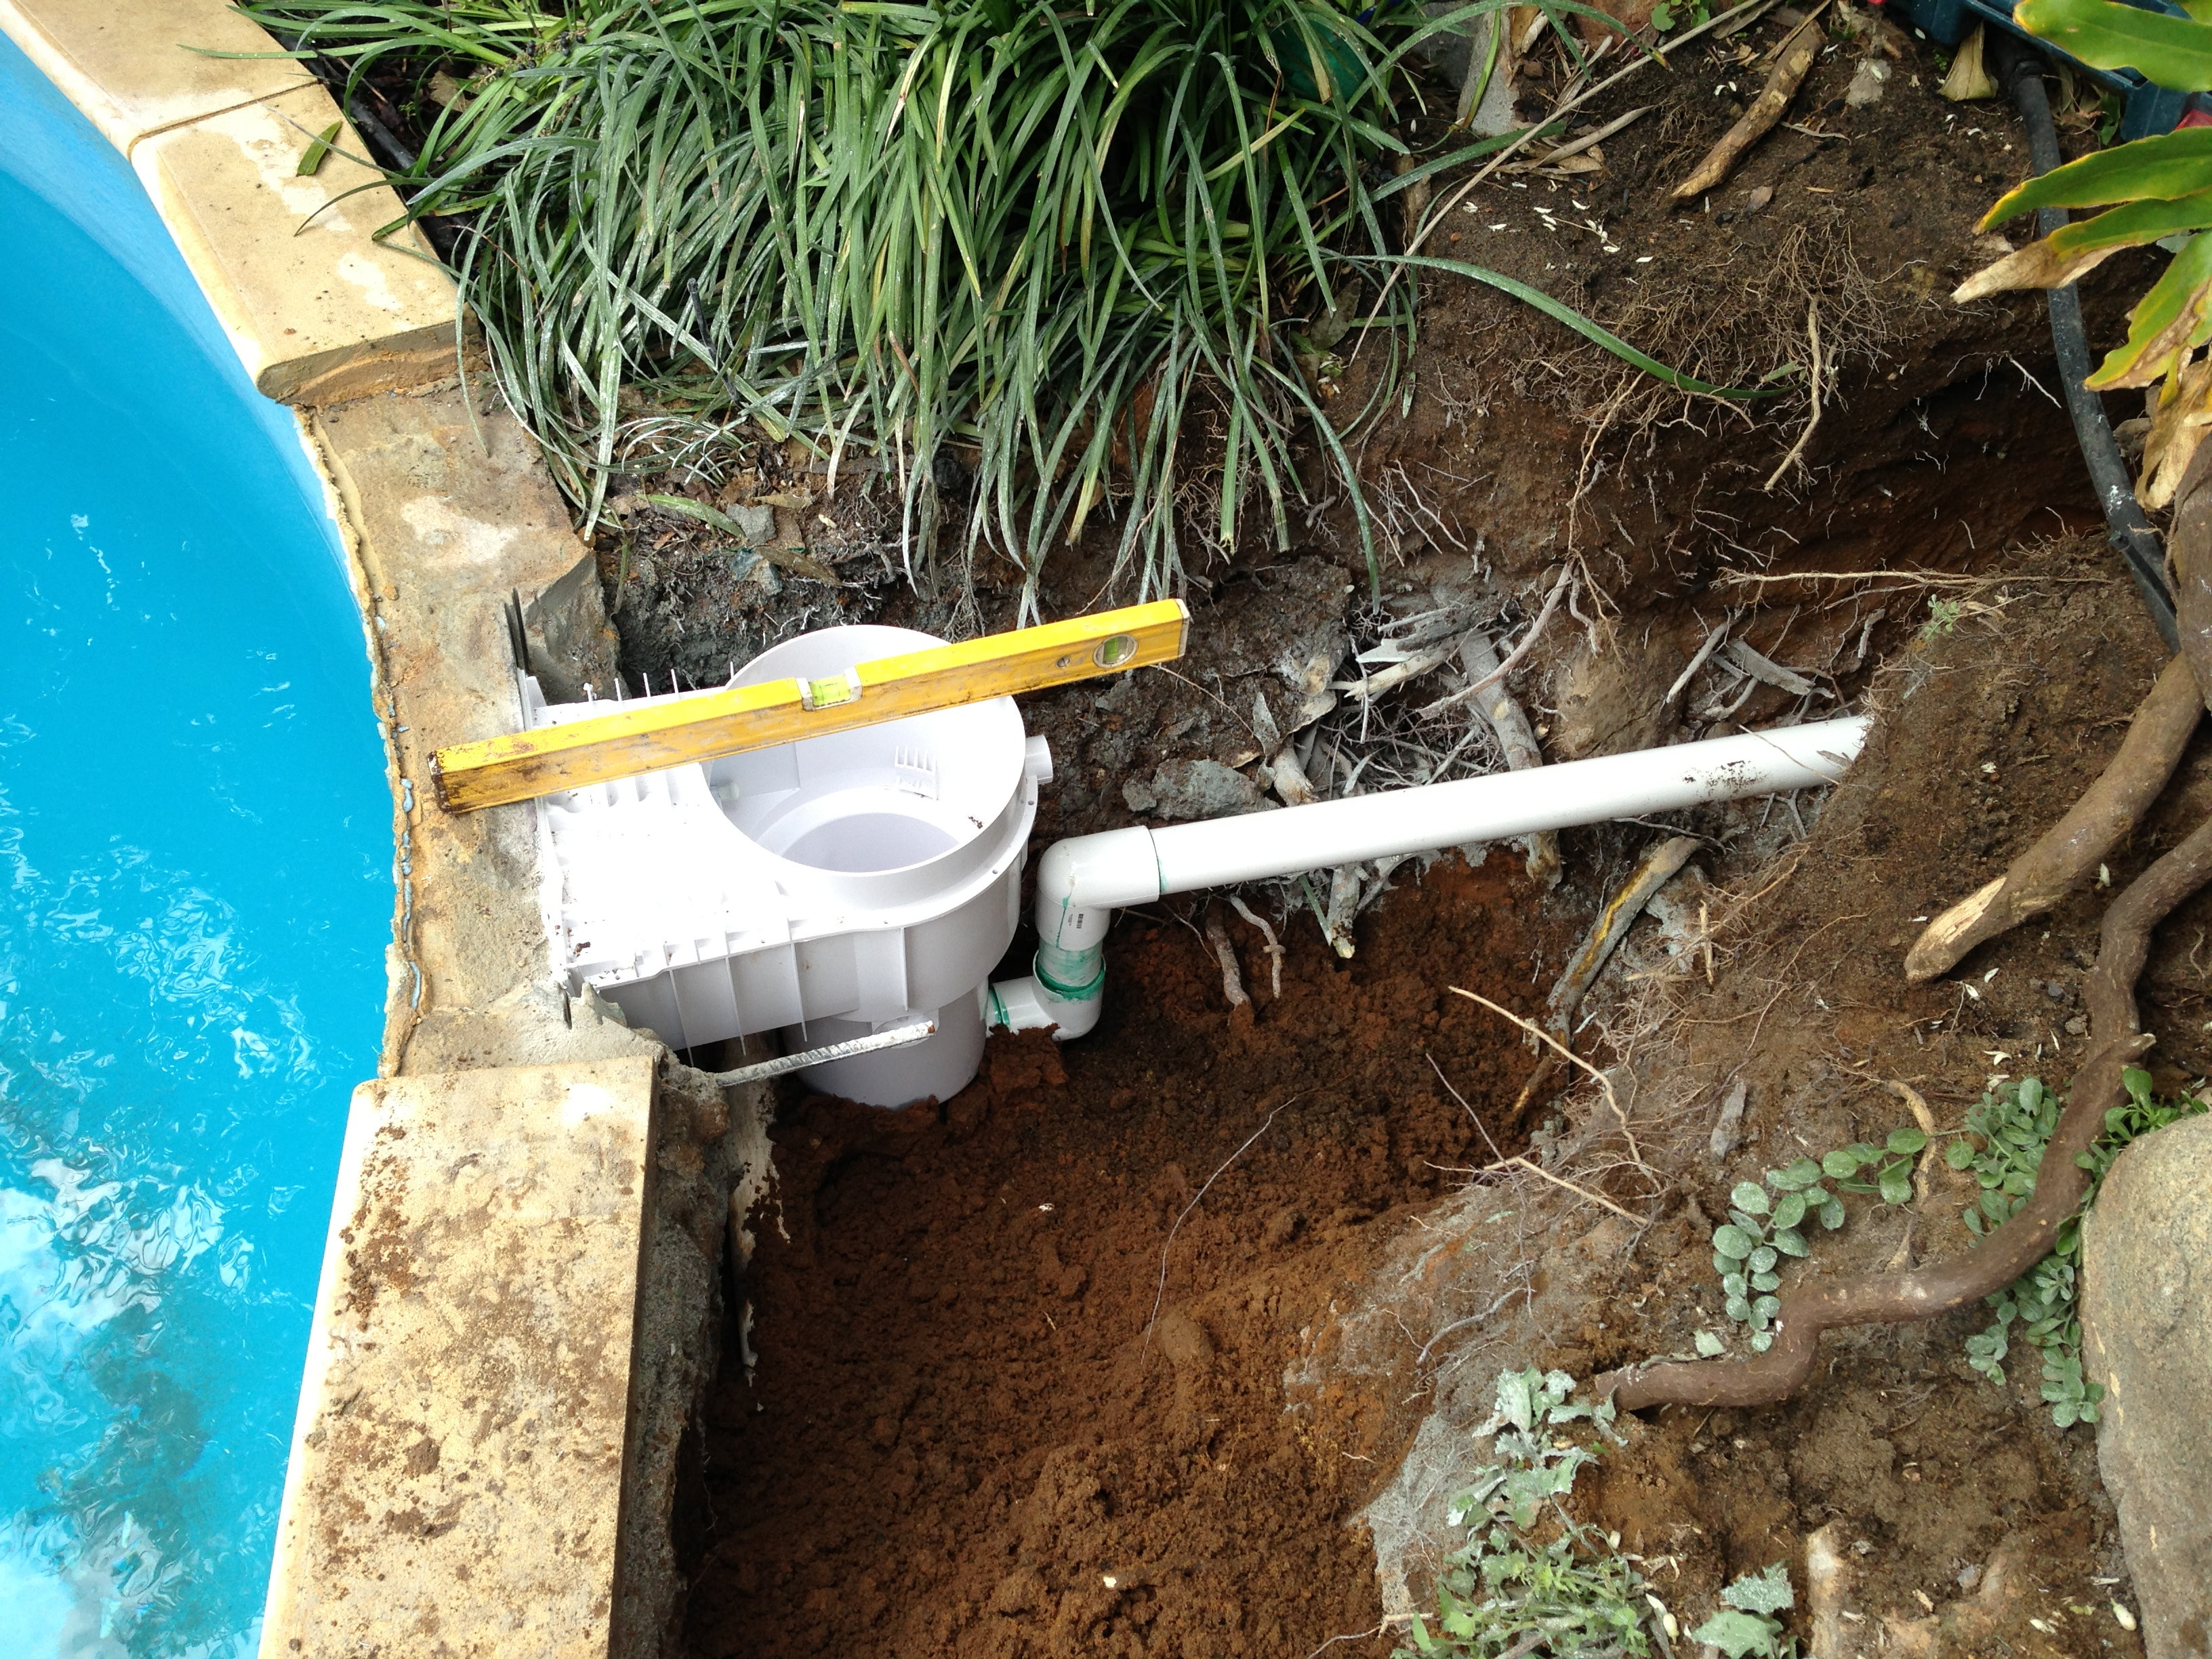 Skimmer Box Replacement Pool Repairs Perth Wa